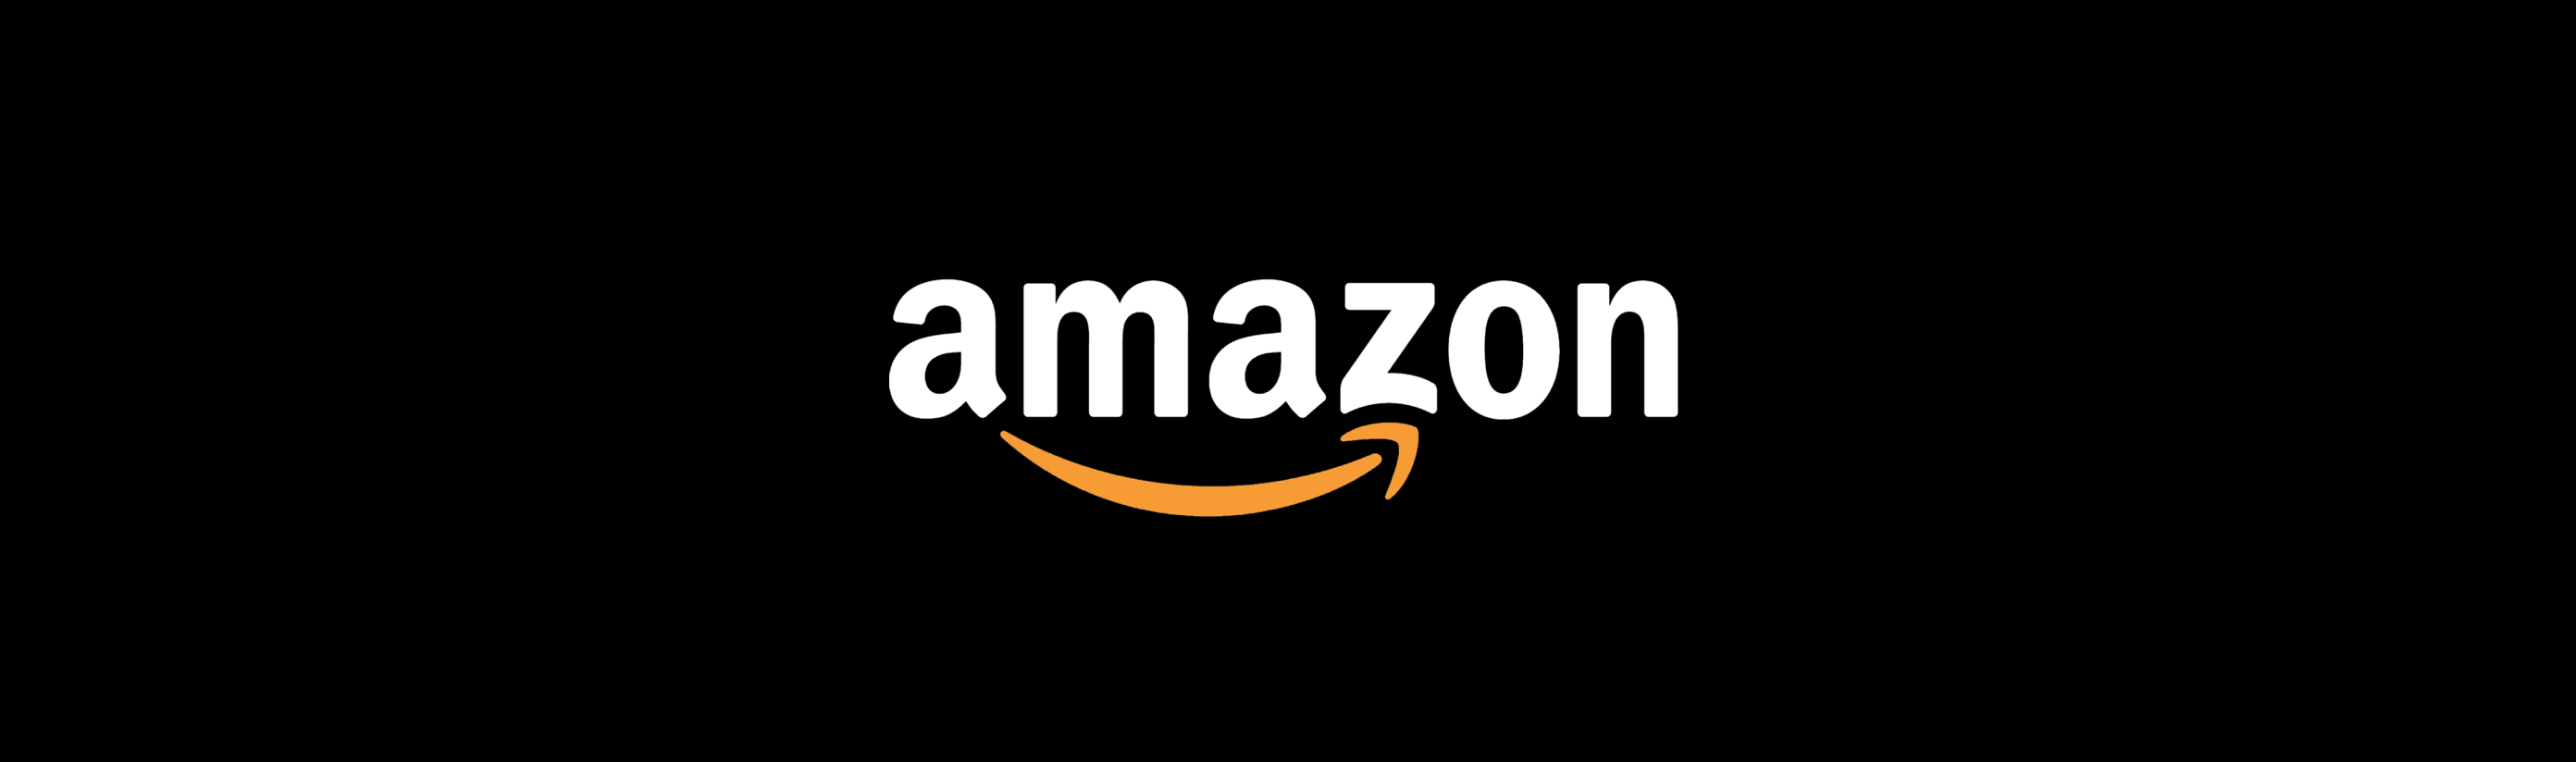 Amazon Lock Banner Image